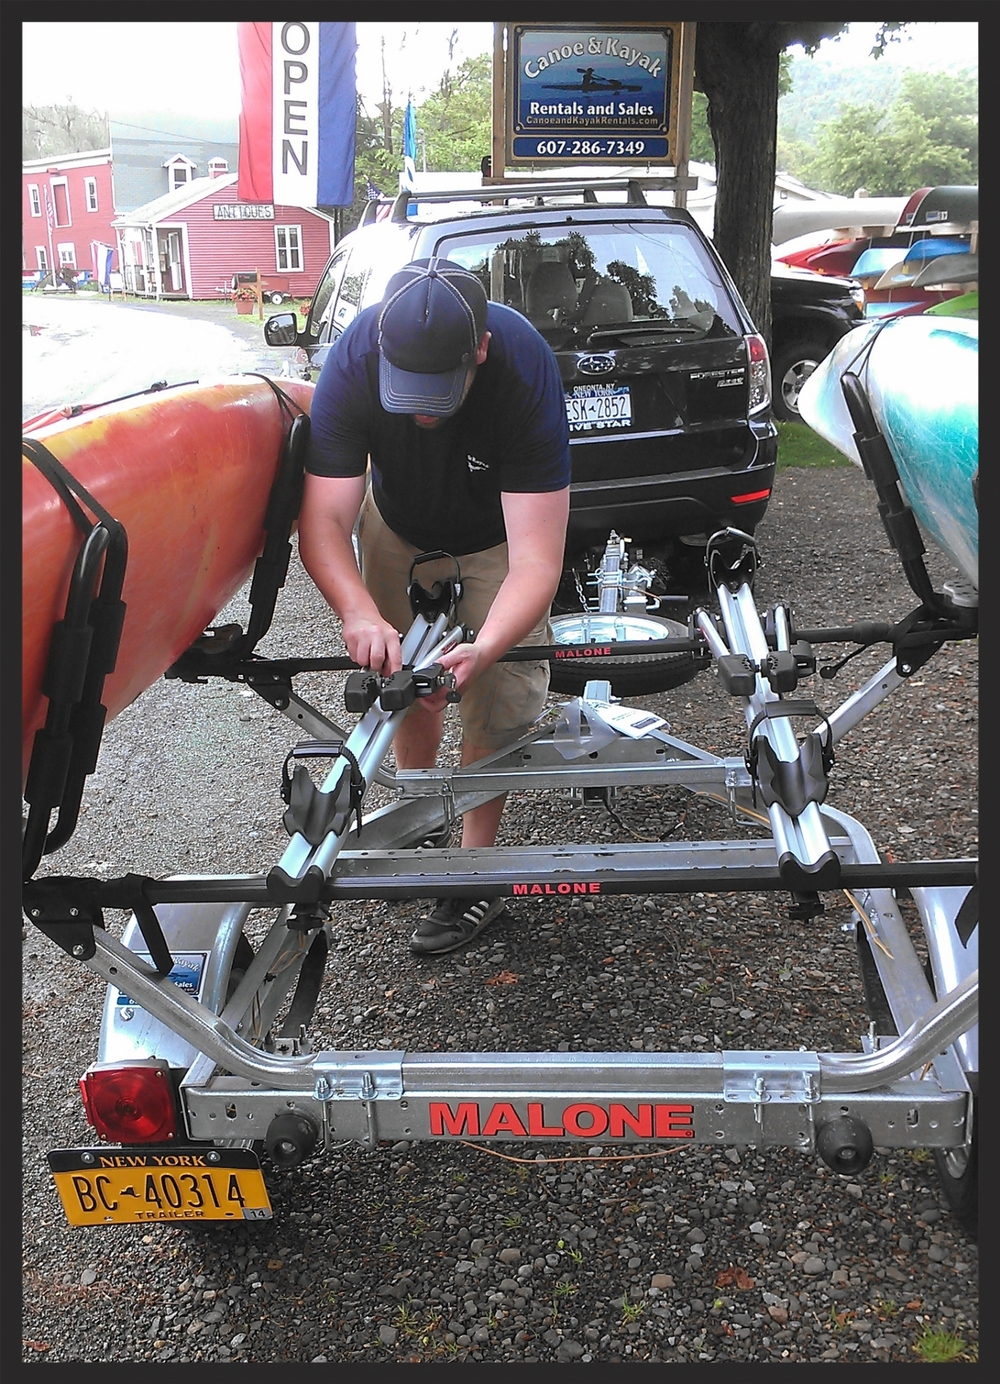 Installation of bike racks on a Malone trailer